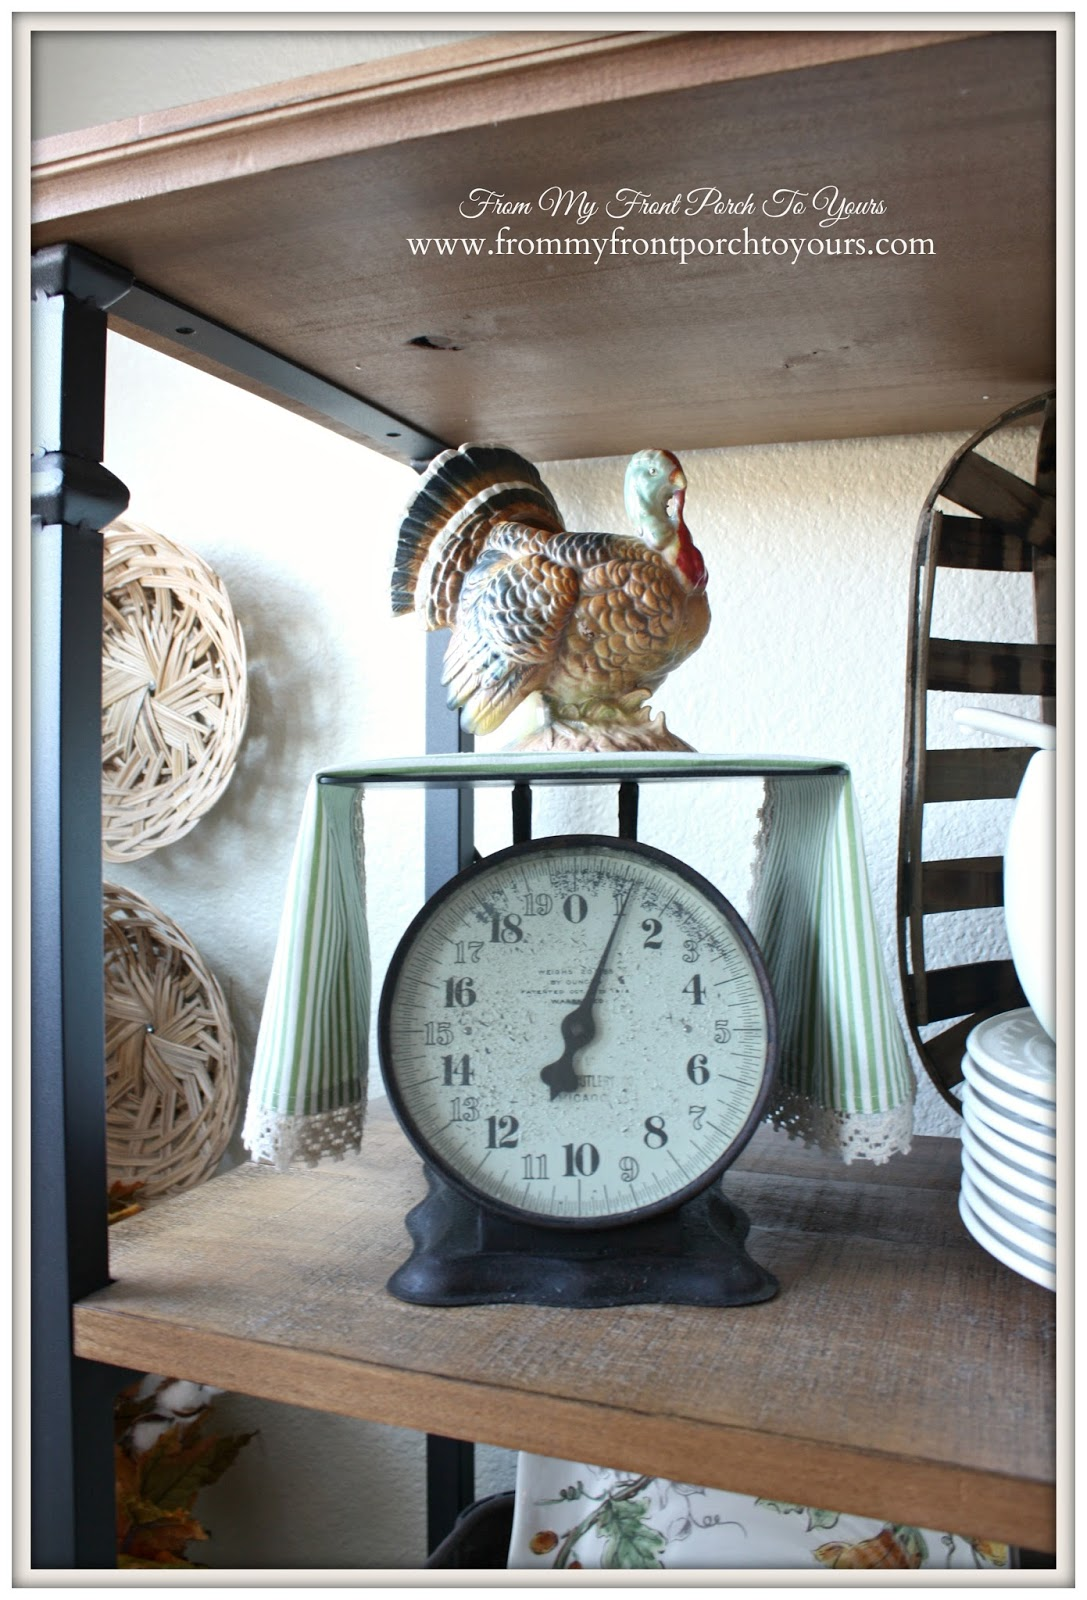 Adventures In Decorating Our 2015 Fall Kitchen: From My Front Porch To Yours: Farmhouse Style Kitchen Fall